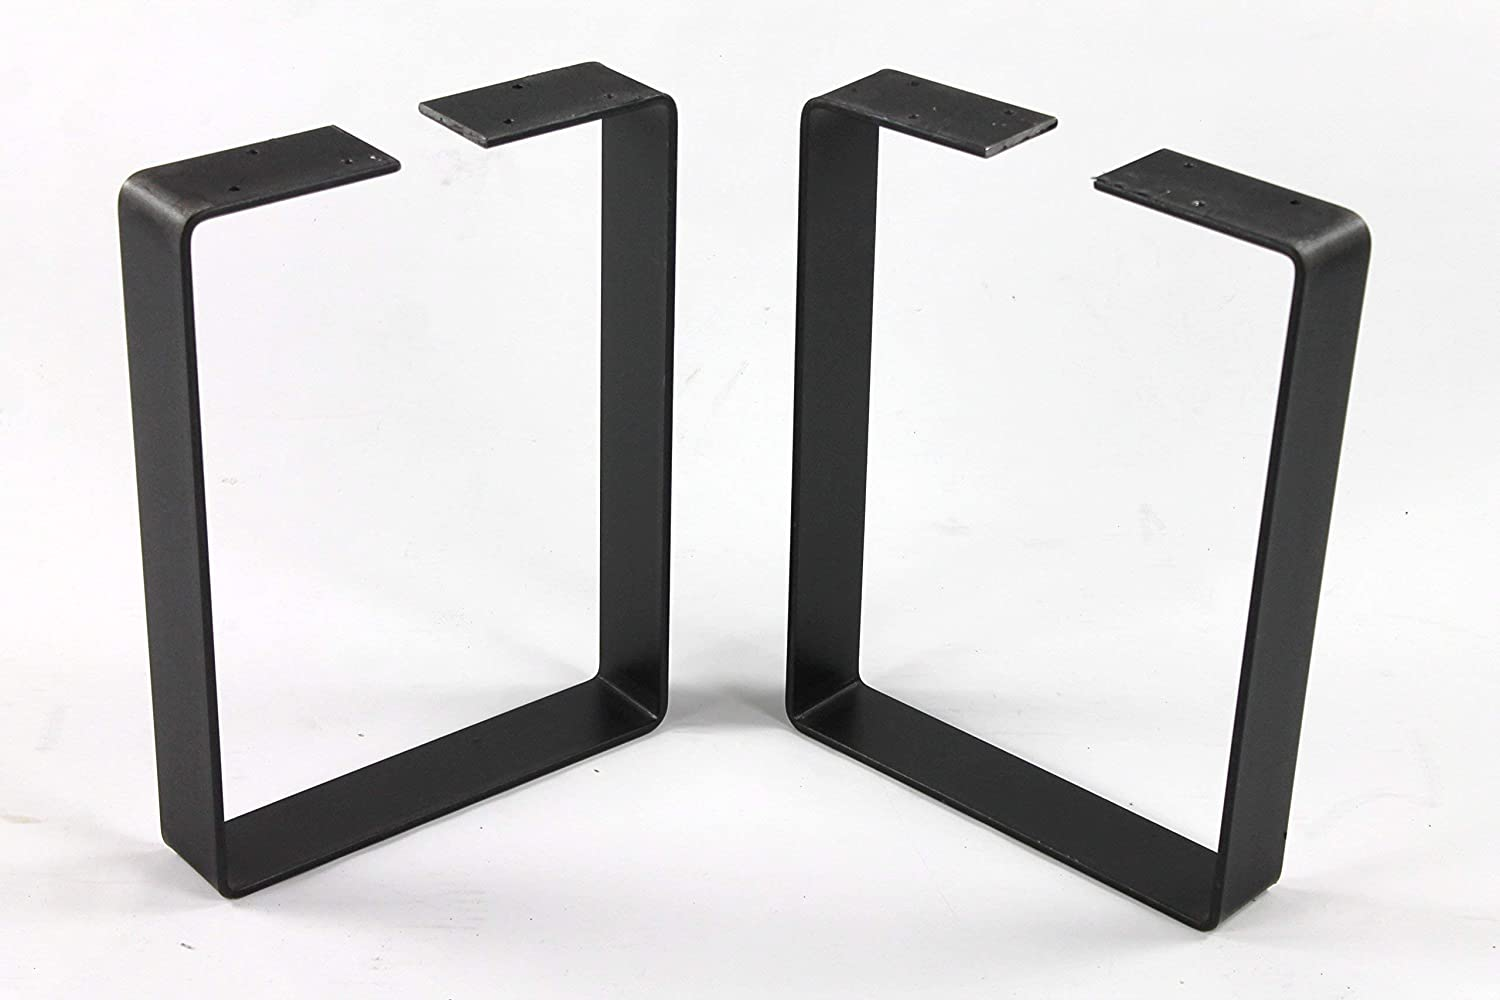 Powdercoated Steel Bench Legs-Choose Your Height and Width